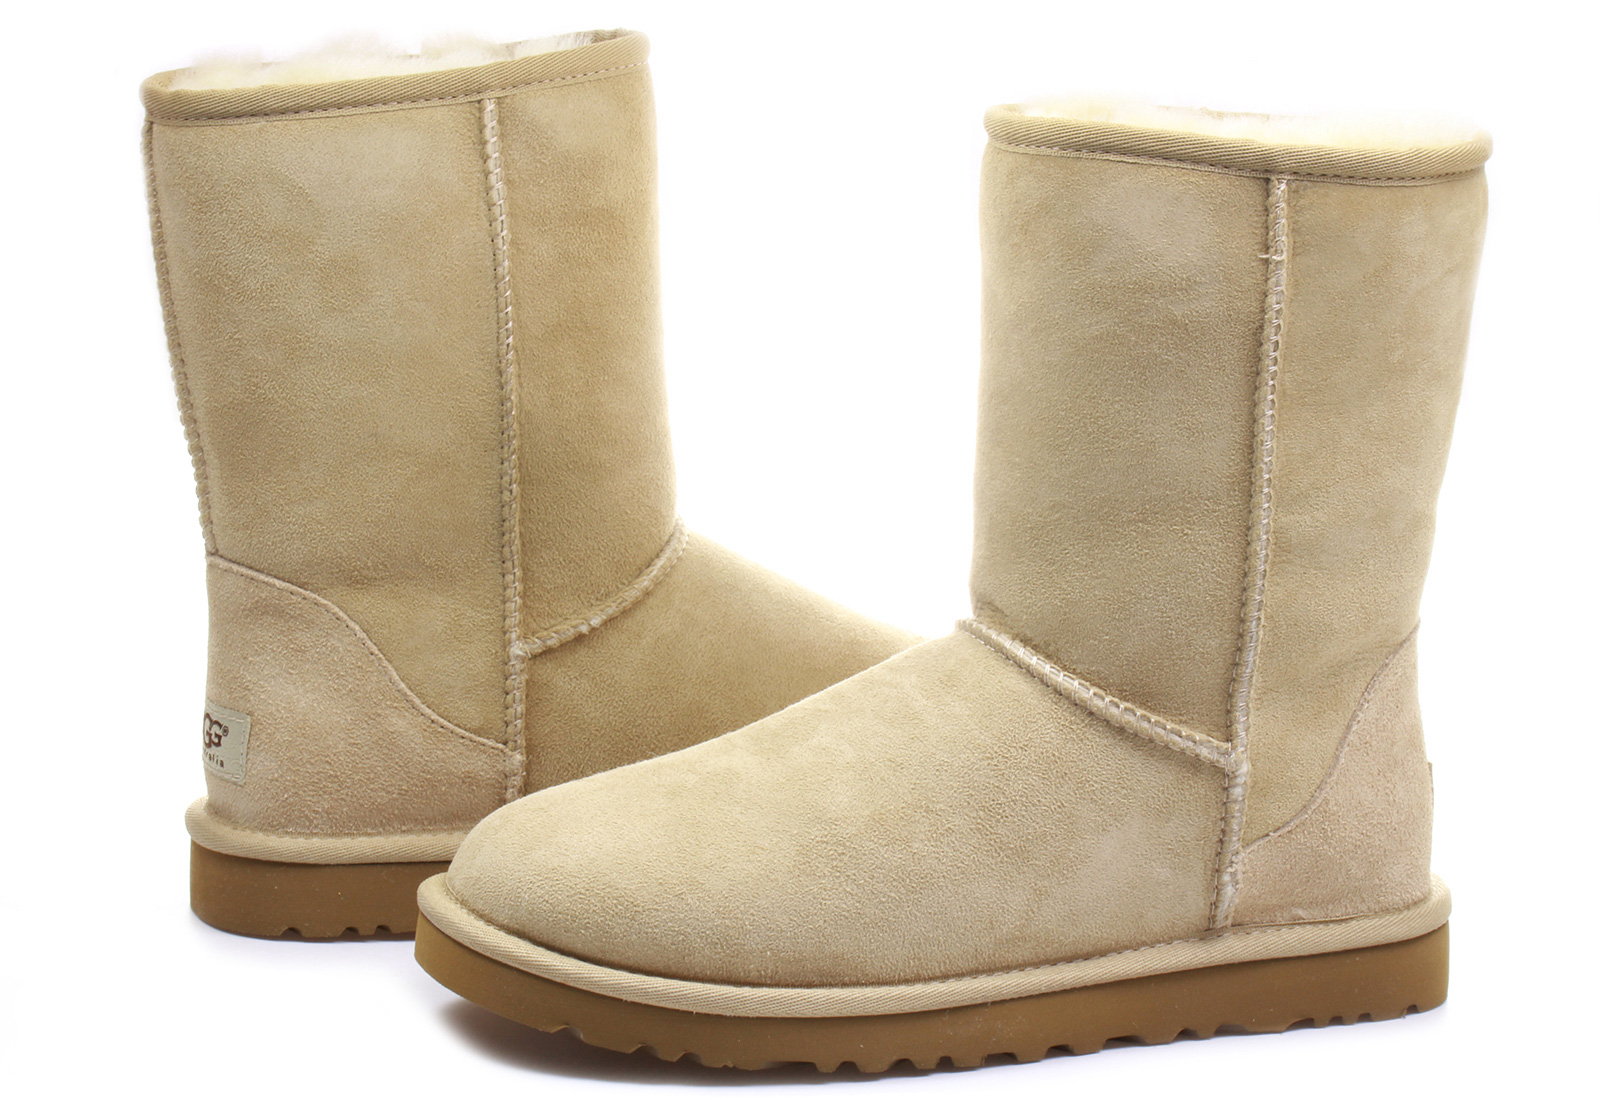 office shoe shop ugg. Office Shop Ugg Boots Shoe M